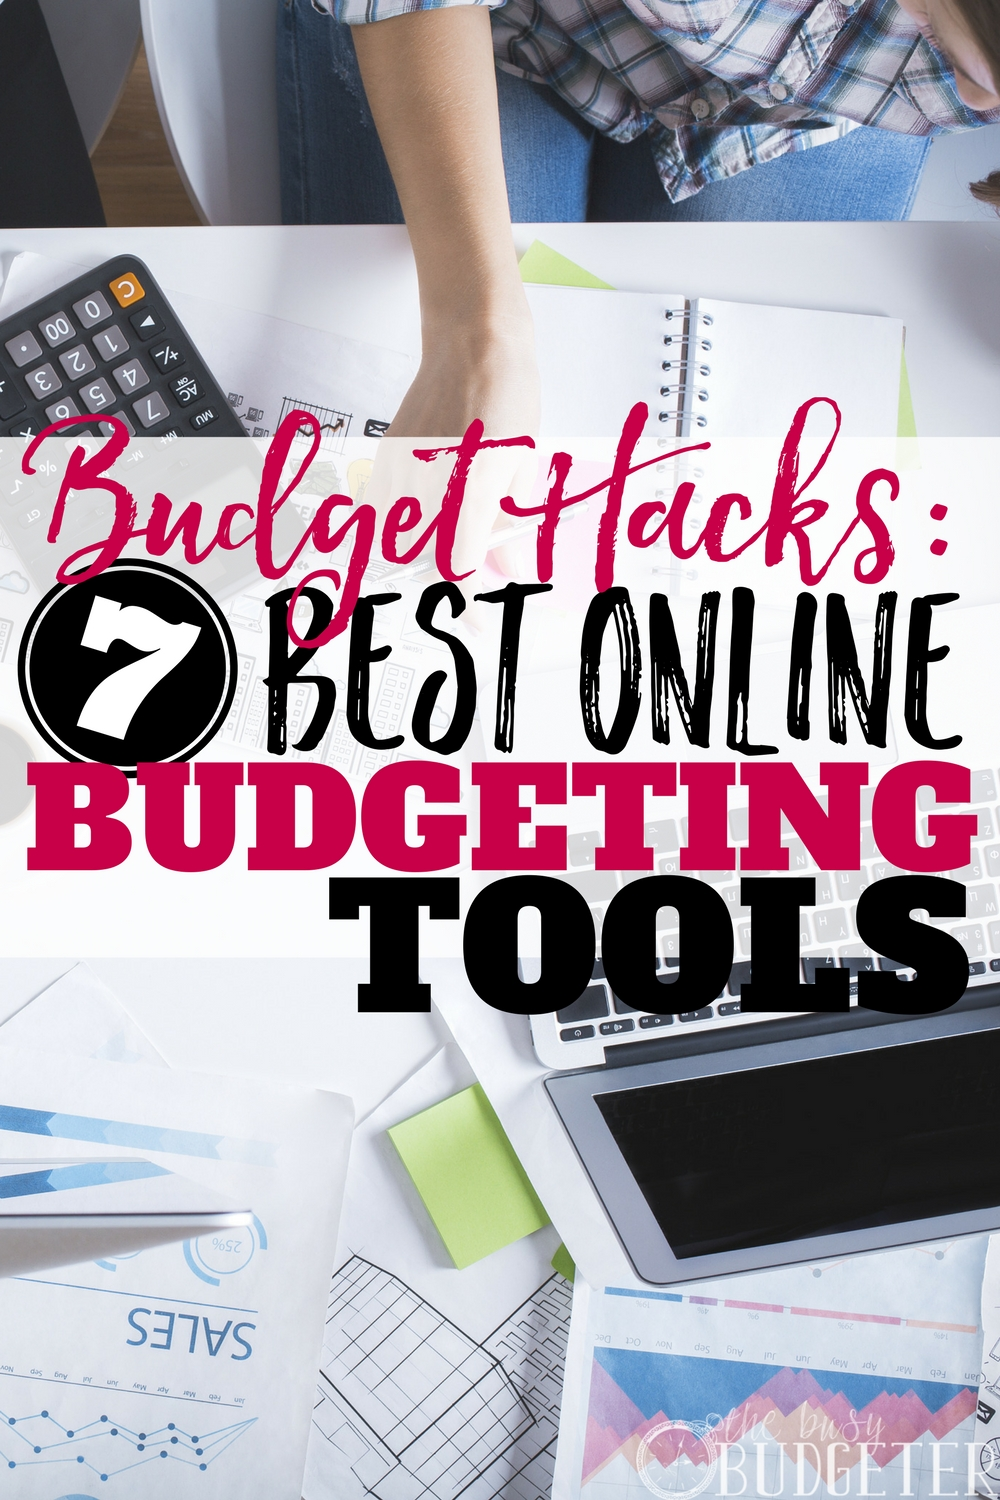 I don't know why budgeting is so difficult for me, but these best online budgeting tools actually make it EASY. It's just so much easier to stay organized. I can actually stick to my budget thanks to these budget hacks. Love it!